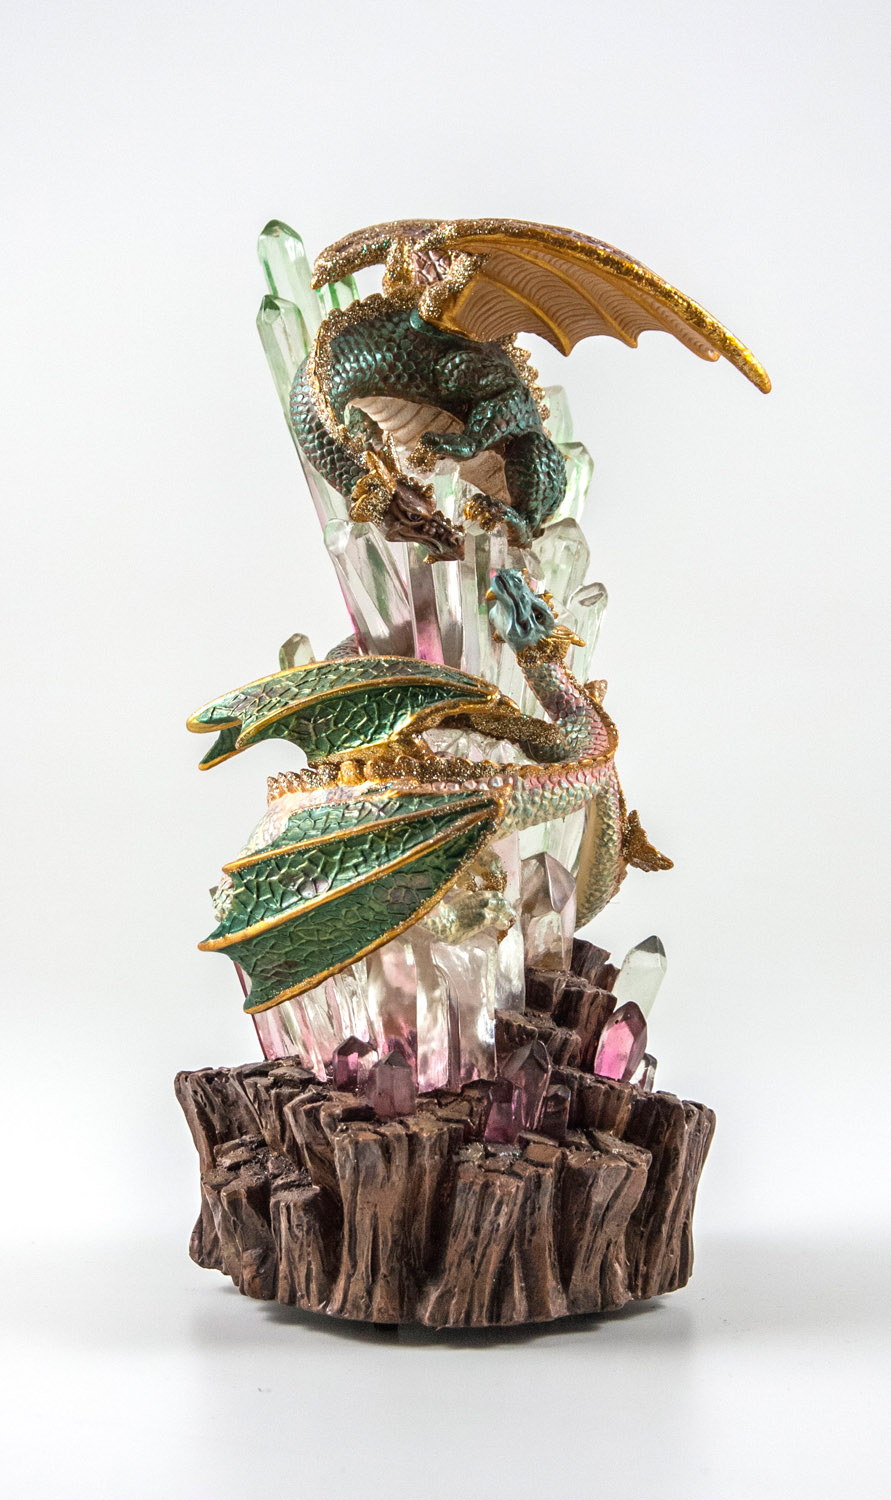 double-dragon-figurine.jpg